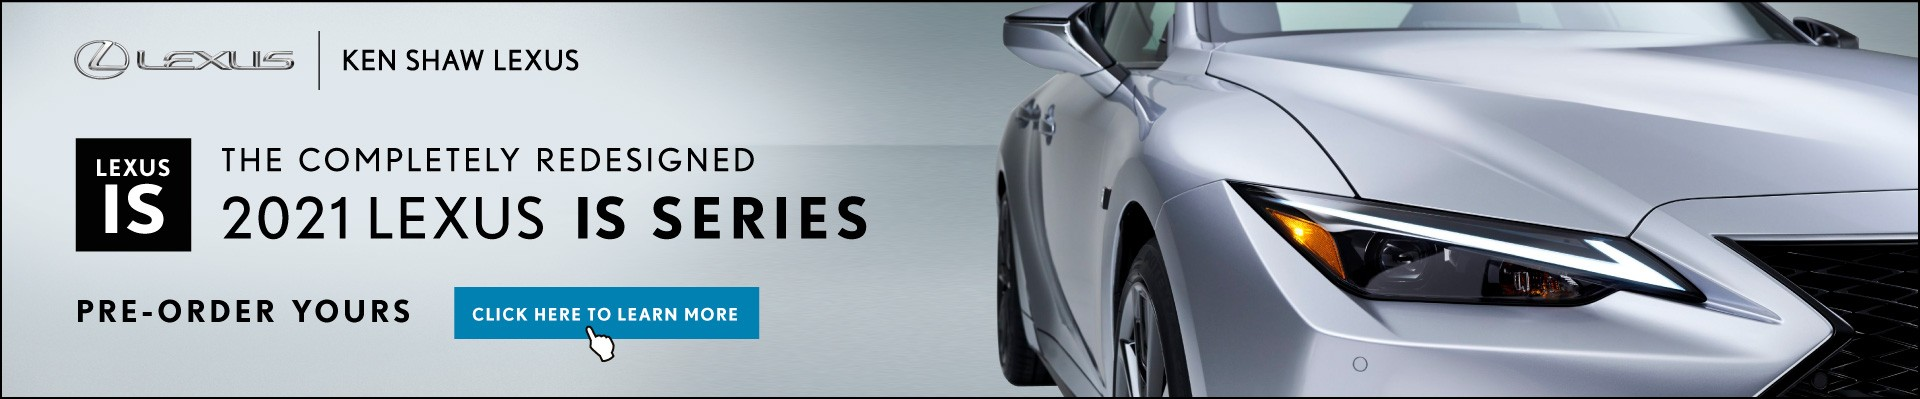 New redesigned 2021 lexus IS 300 F SPORT AWD at Ken Shaw Lexus in Toronto, Ontario, GTA